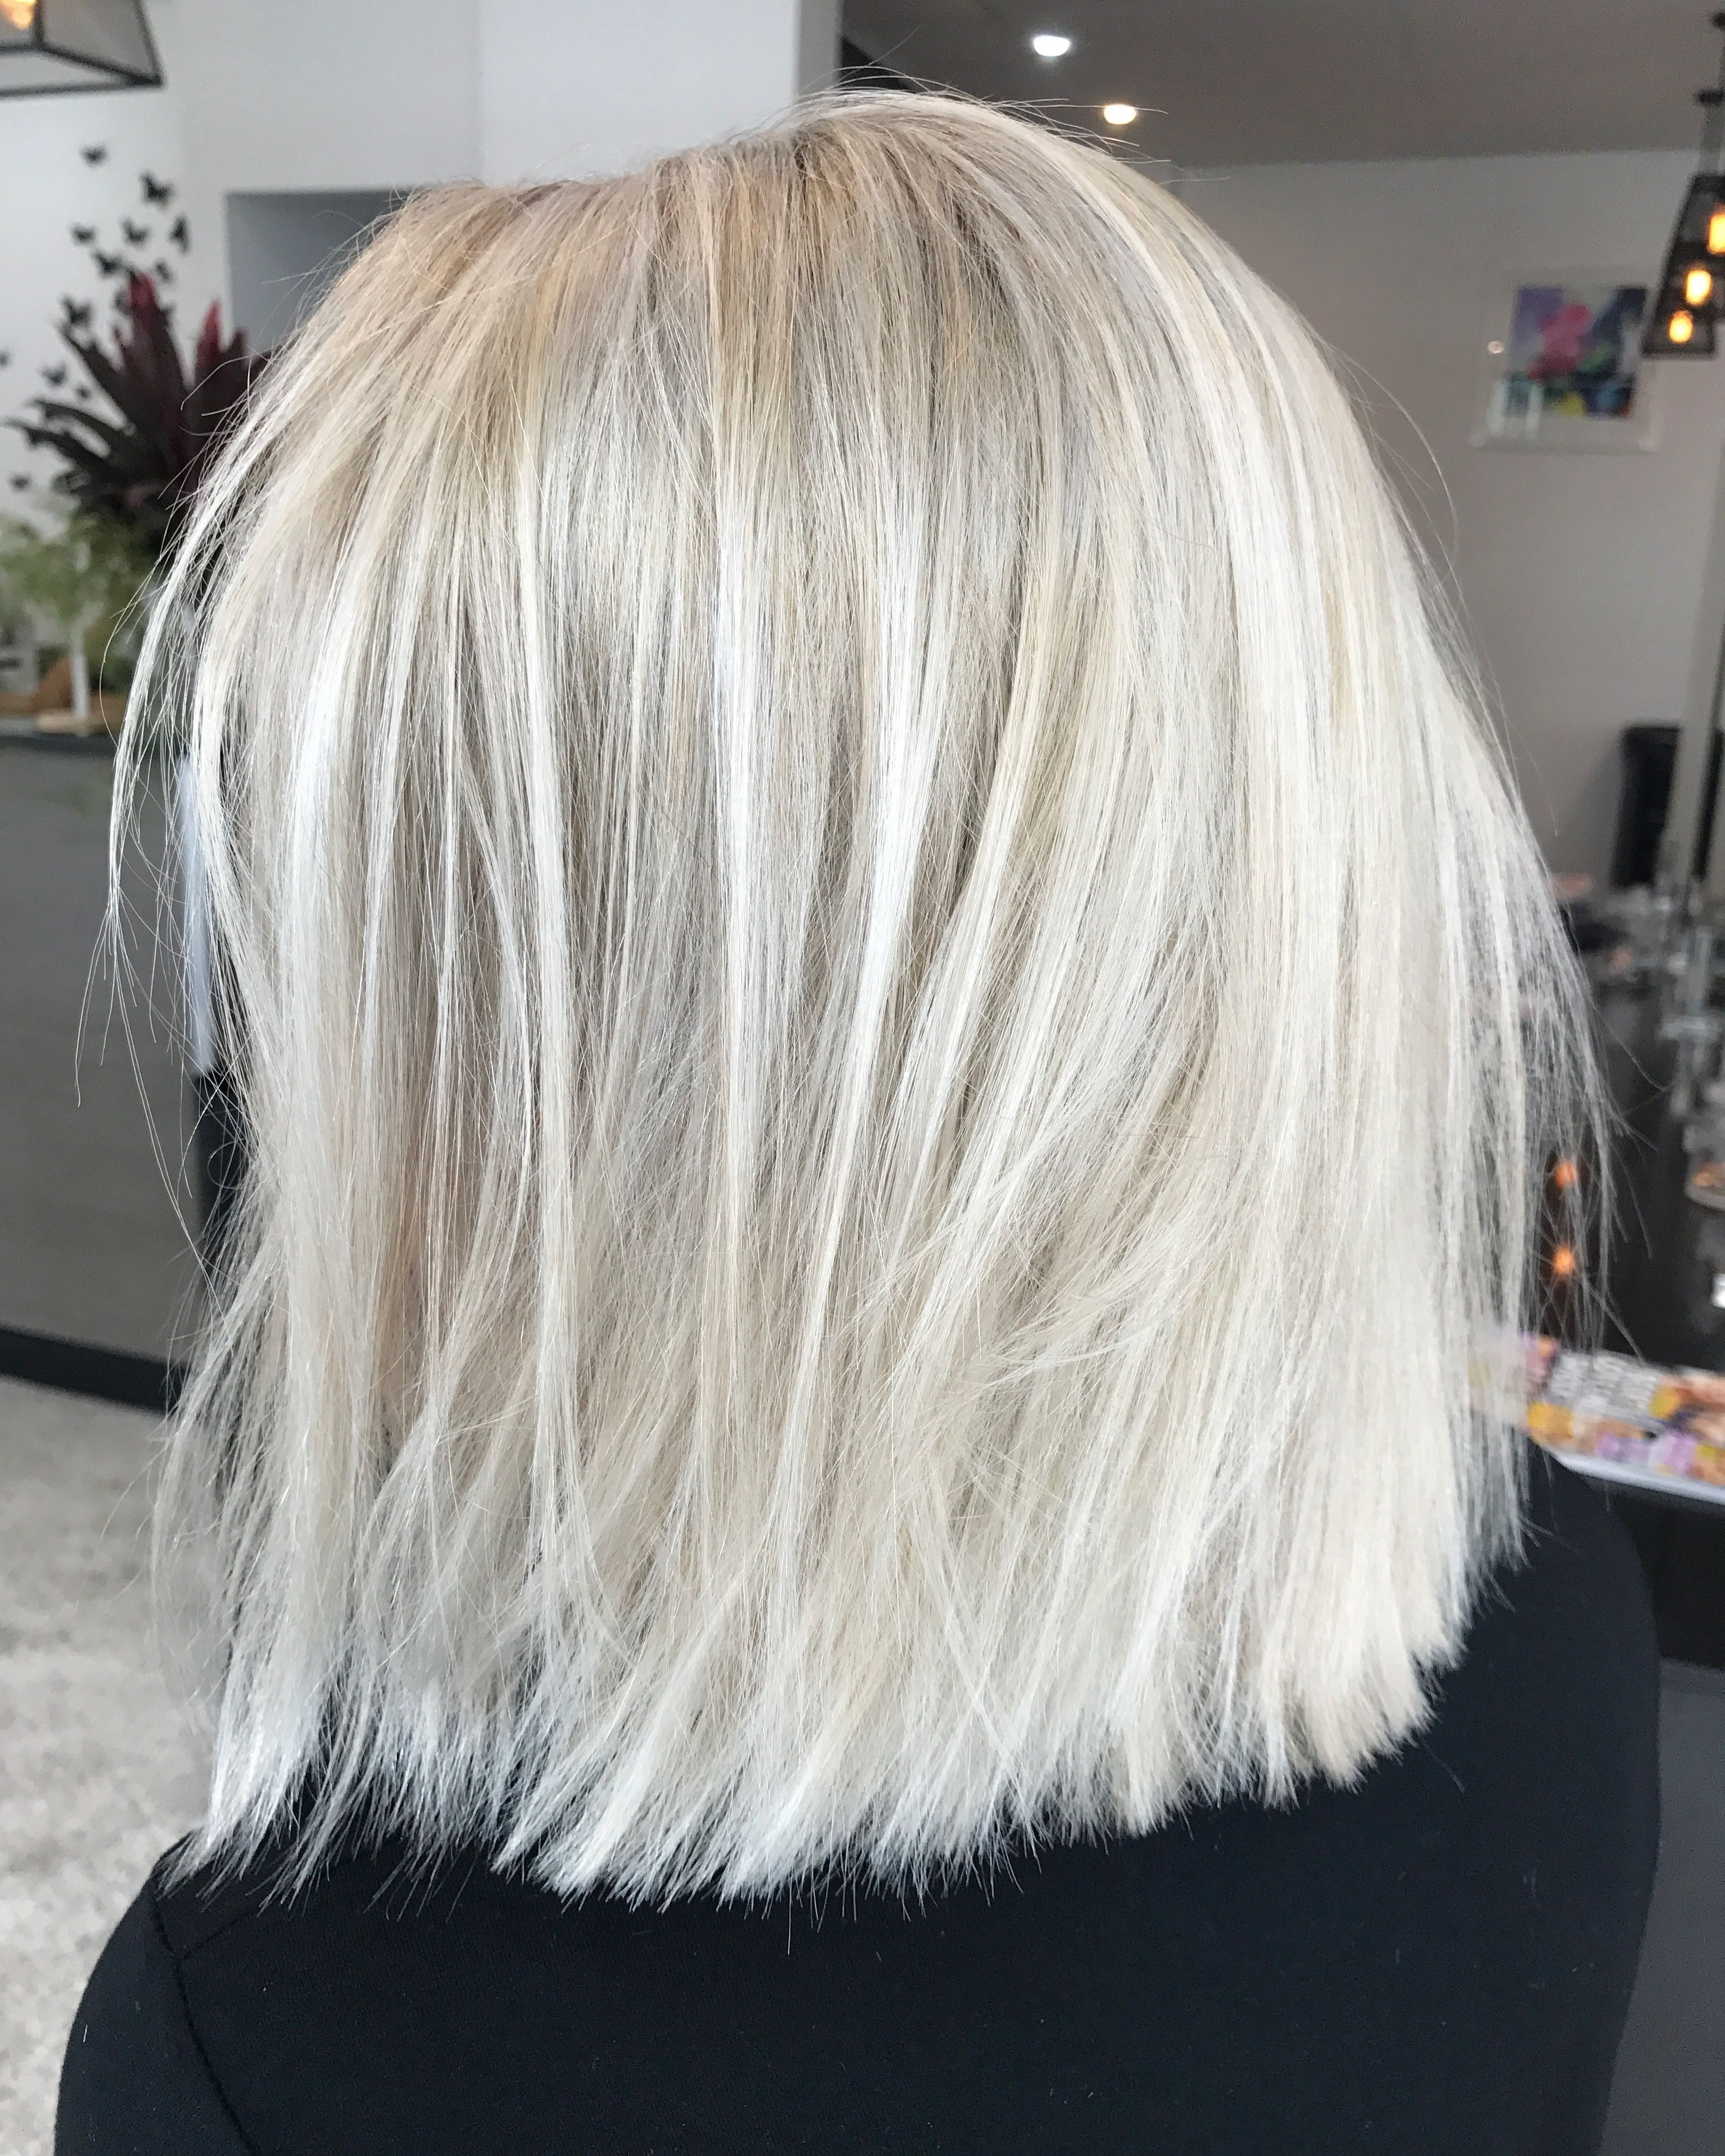 Pin On Hairstyles Ideas